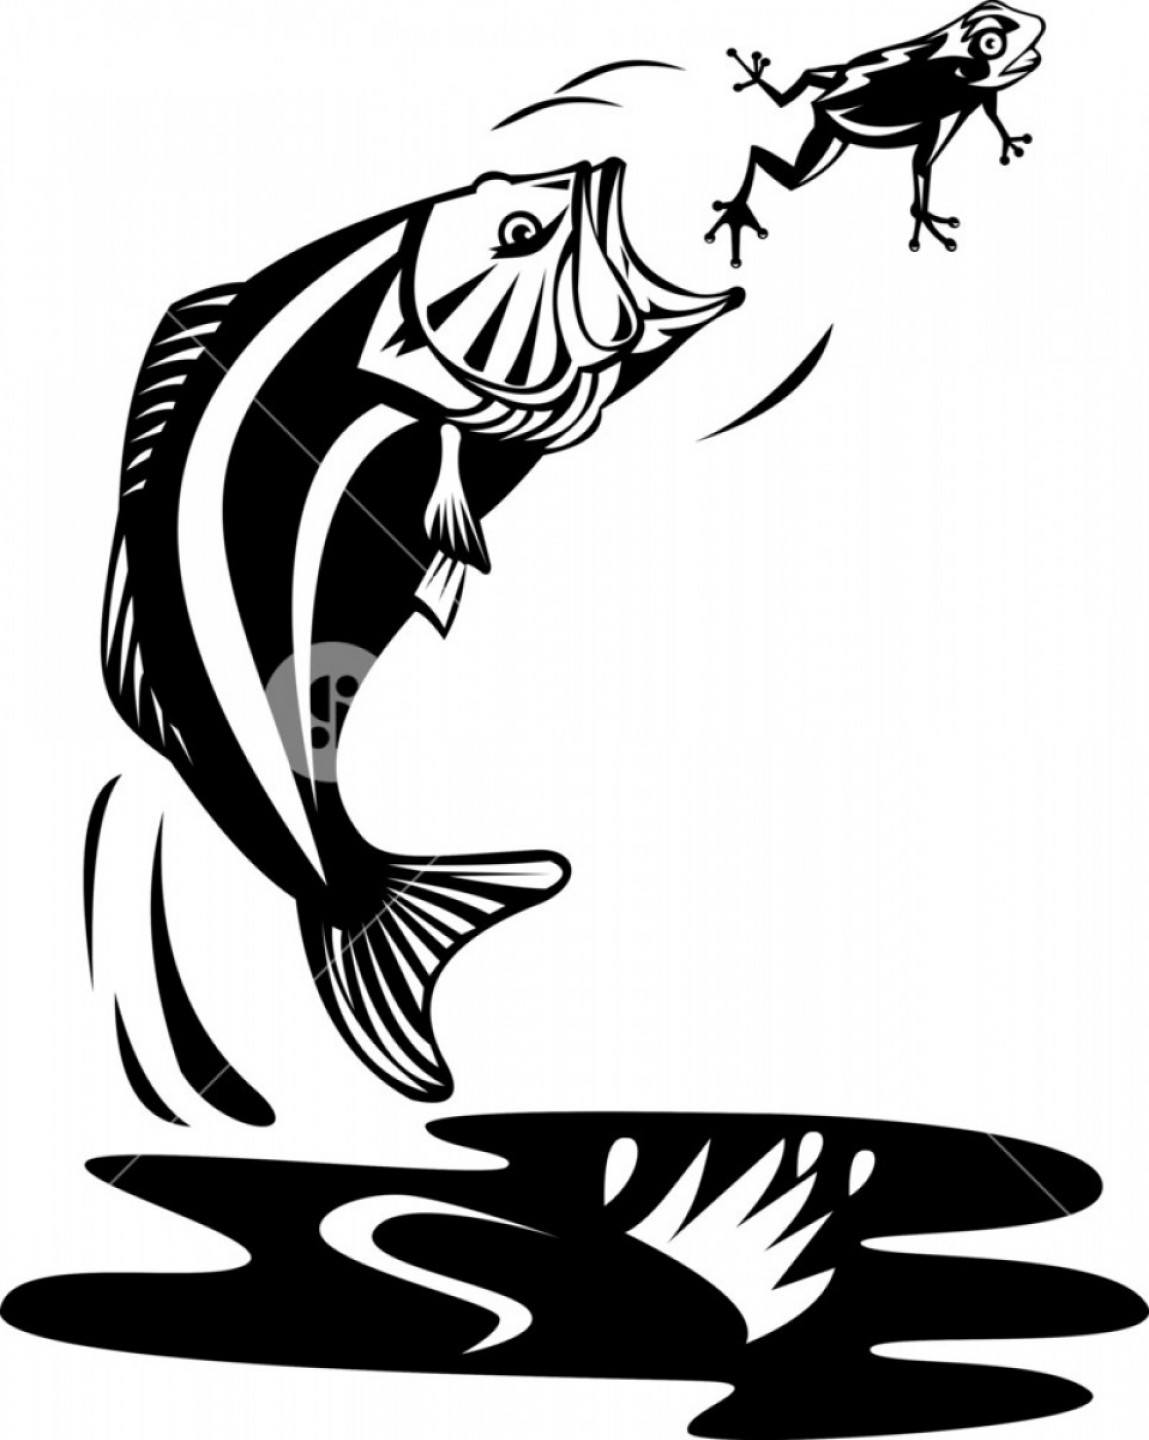 Largemouth Bass Silhouette Vector: Largemouth Bass Jumping Catching Frog Rwkrioquwjgmhnk